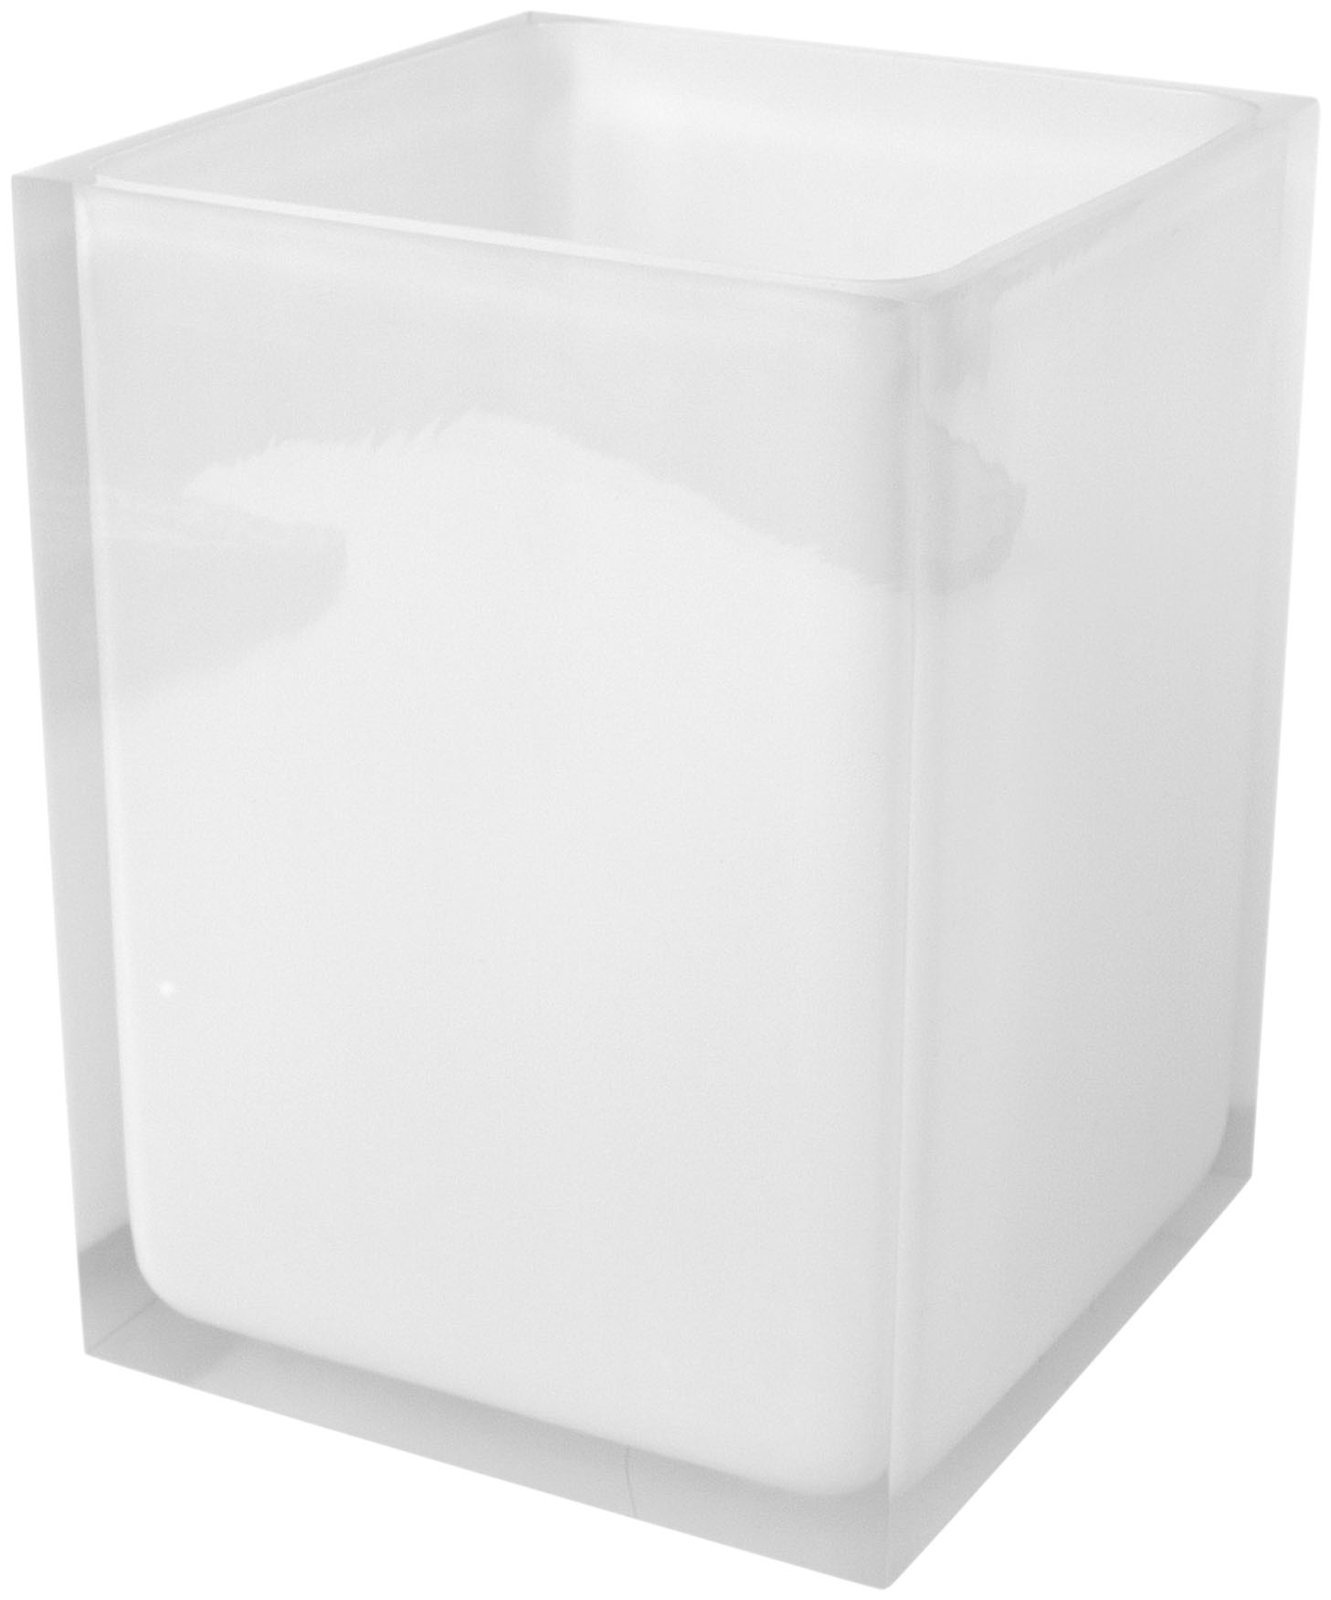 Jonathan Adler Hollywood Waste Basket, White by Jonathan Adler